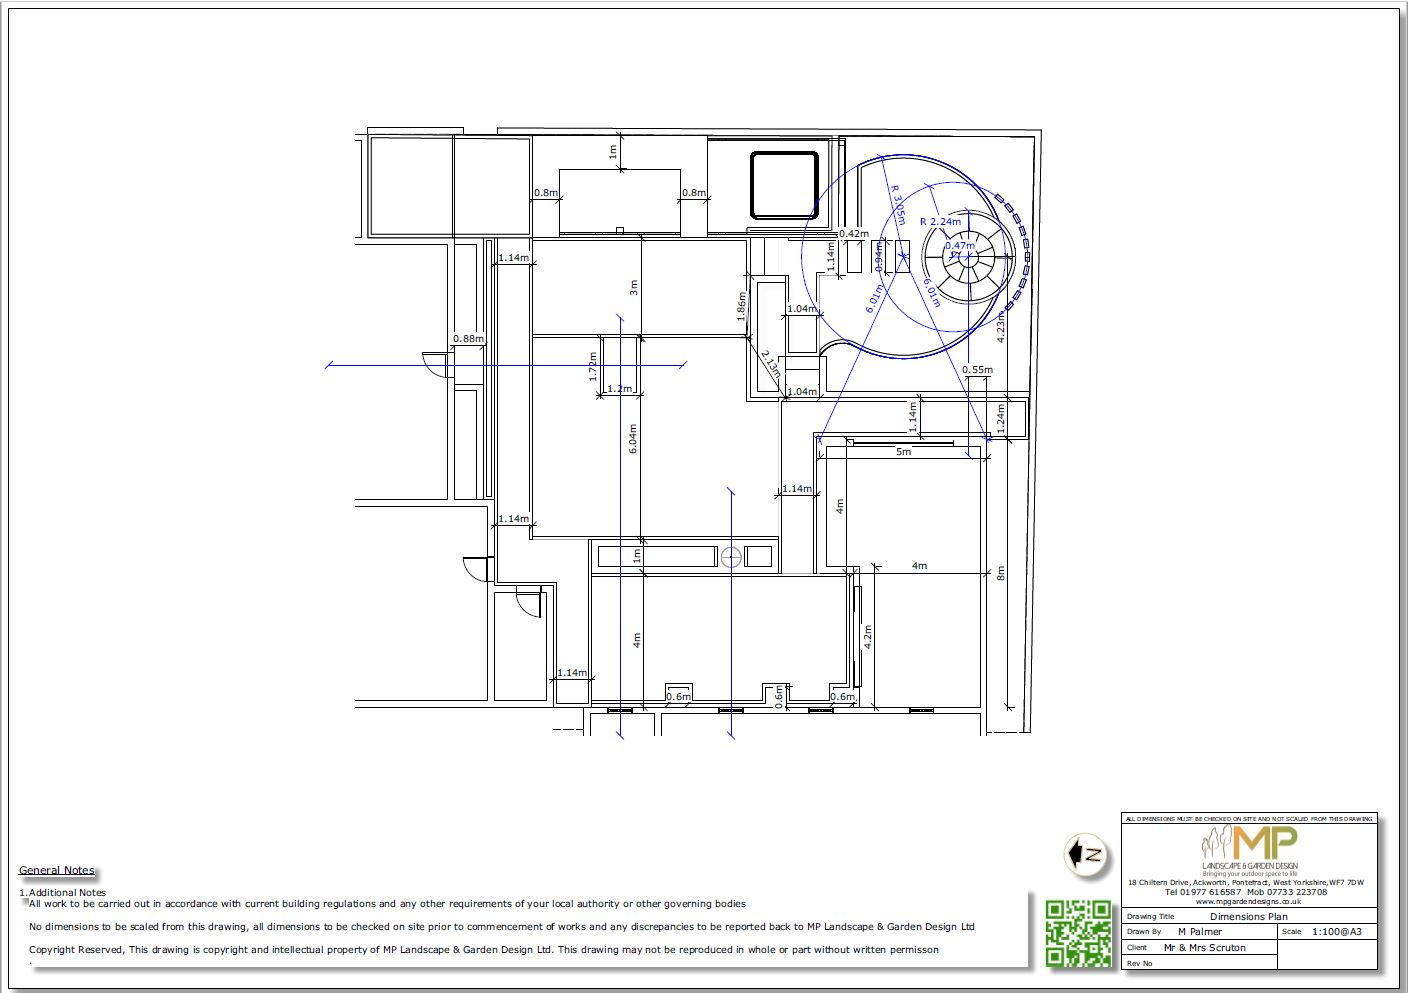 4. Garden layout dimensions plan for a property in Pollington